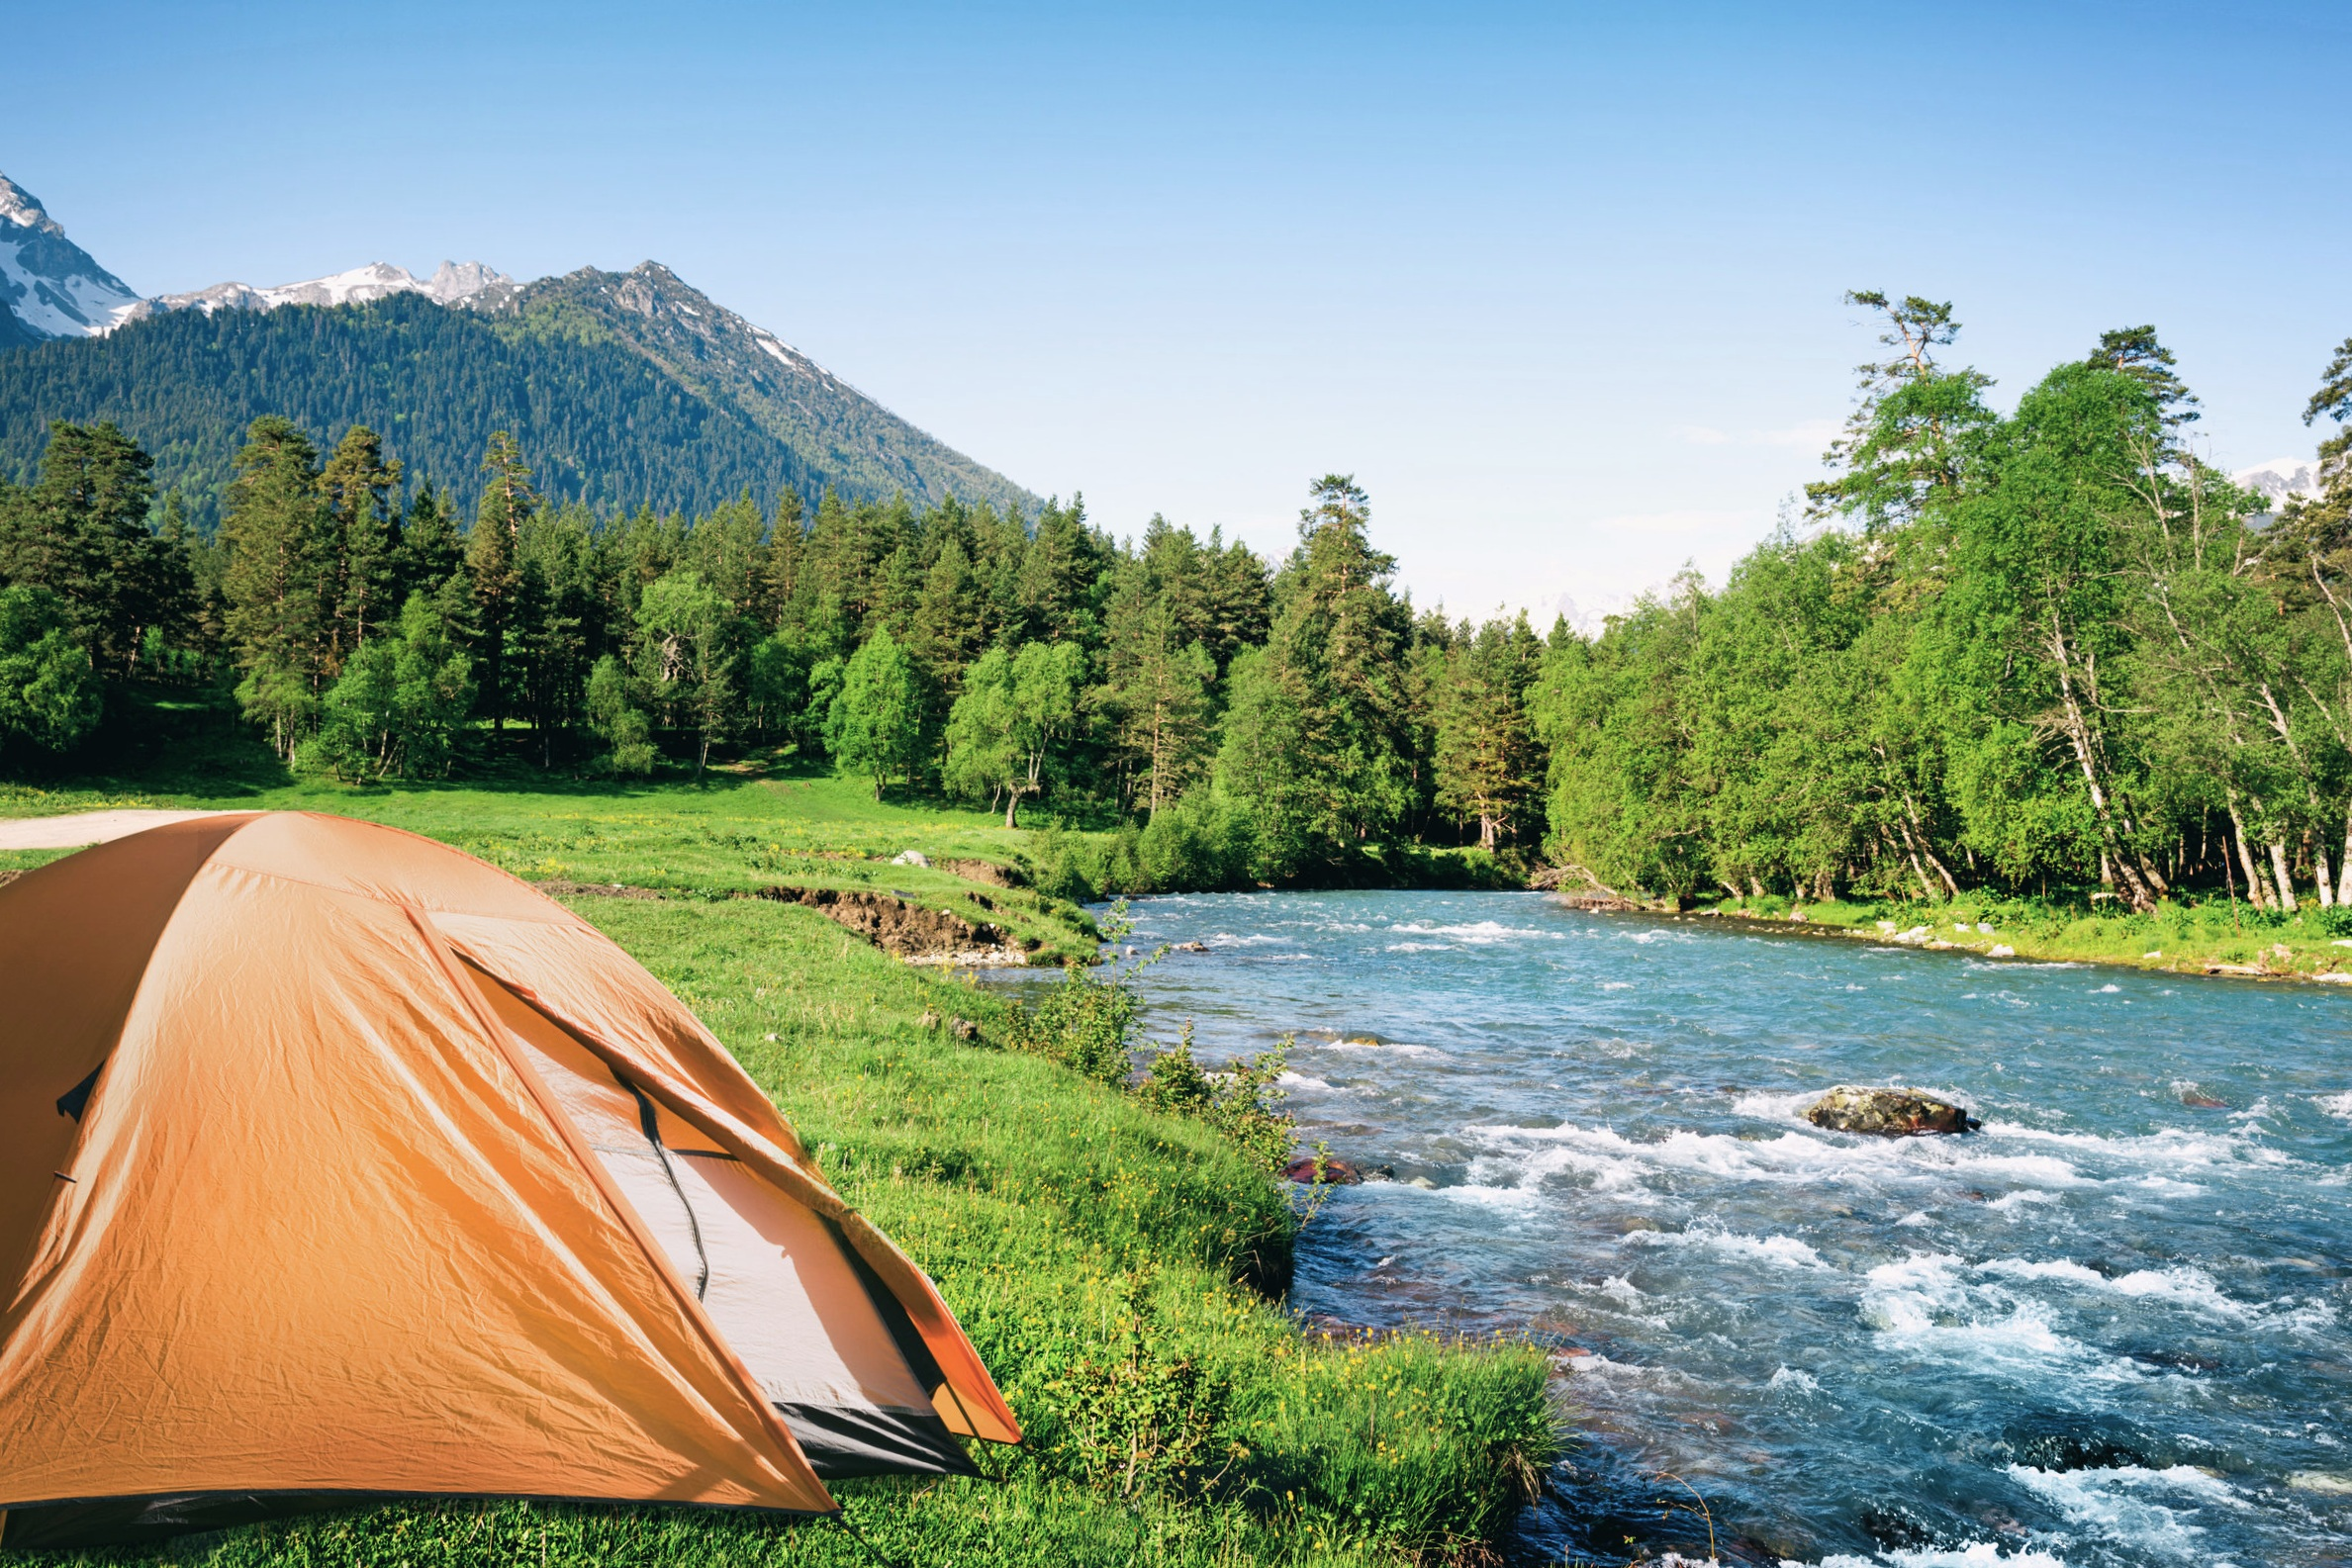 Bring your own tent, sleeping pad, sleeping bag and pillow. The camping sitesare near Moose Creek, and you will have the easy flow of the creekto lull you to sleep every night. - tent camping$1,899